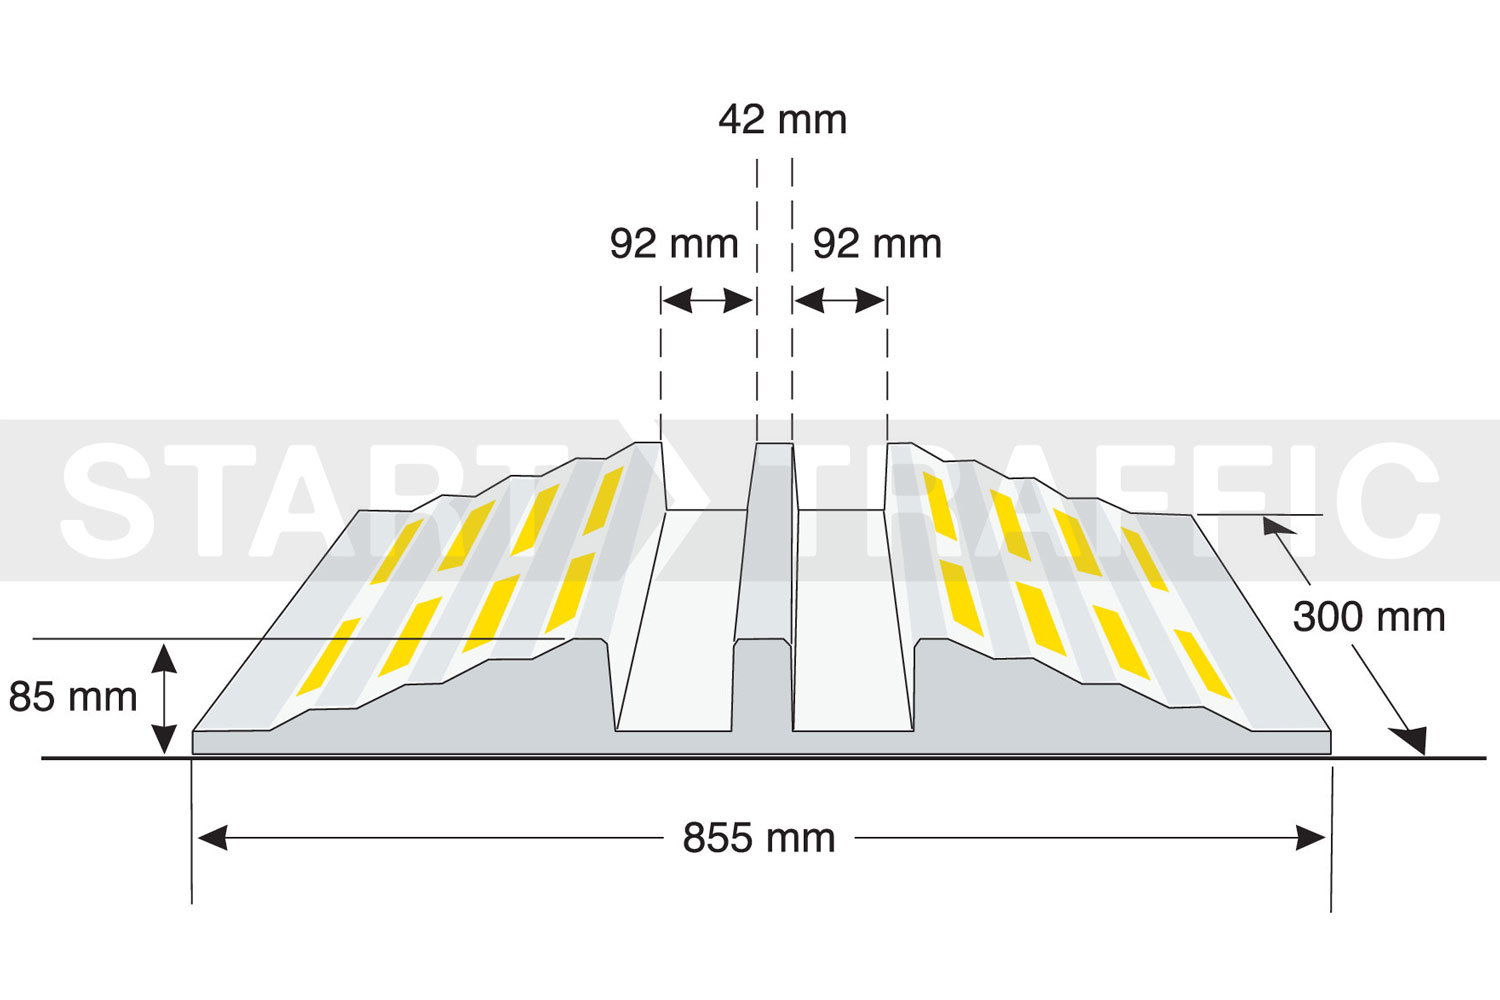 Heavy Duty Cable Ramp Dimensions